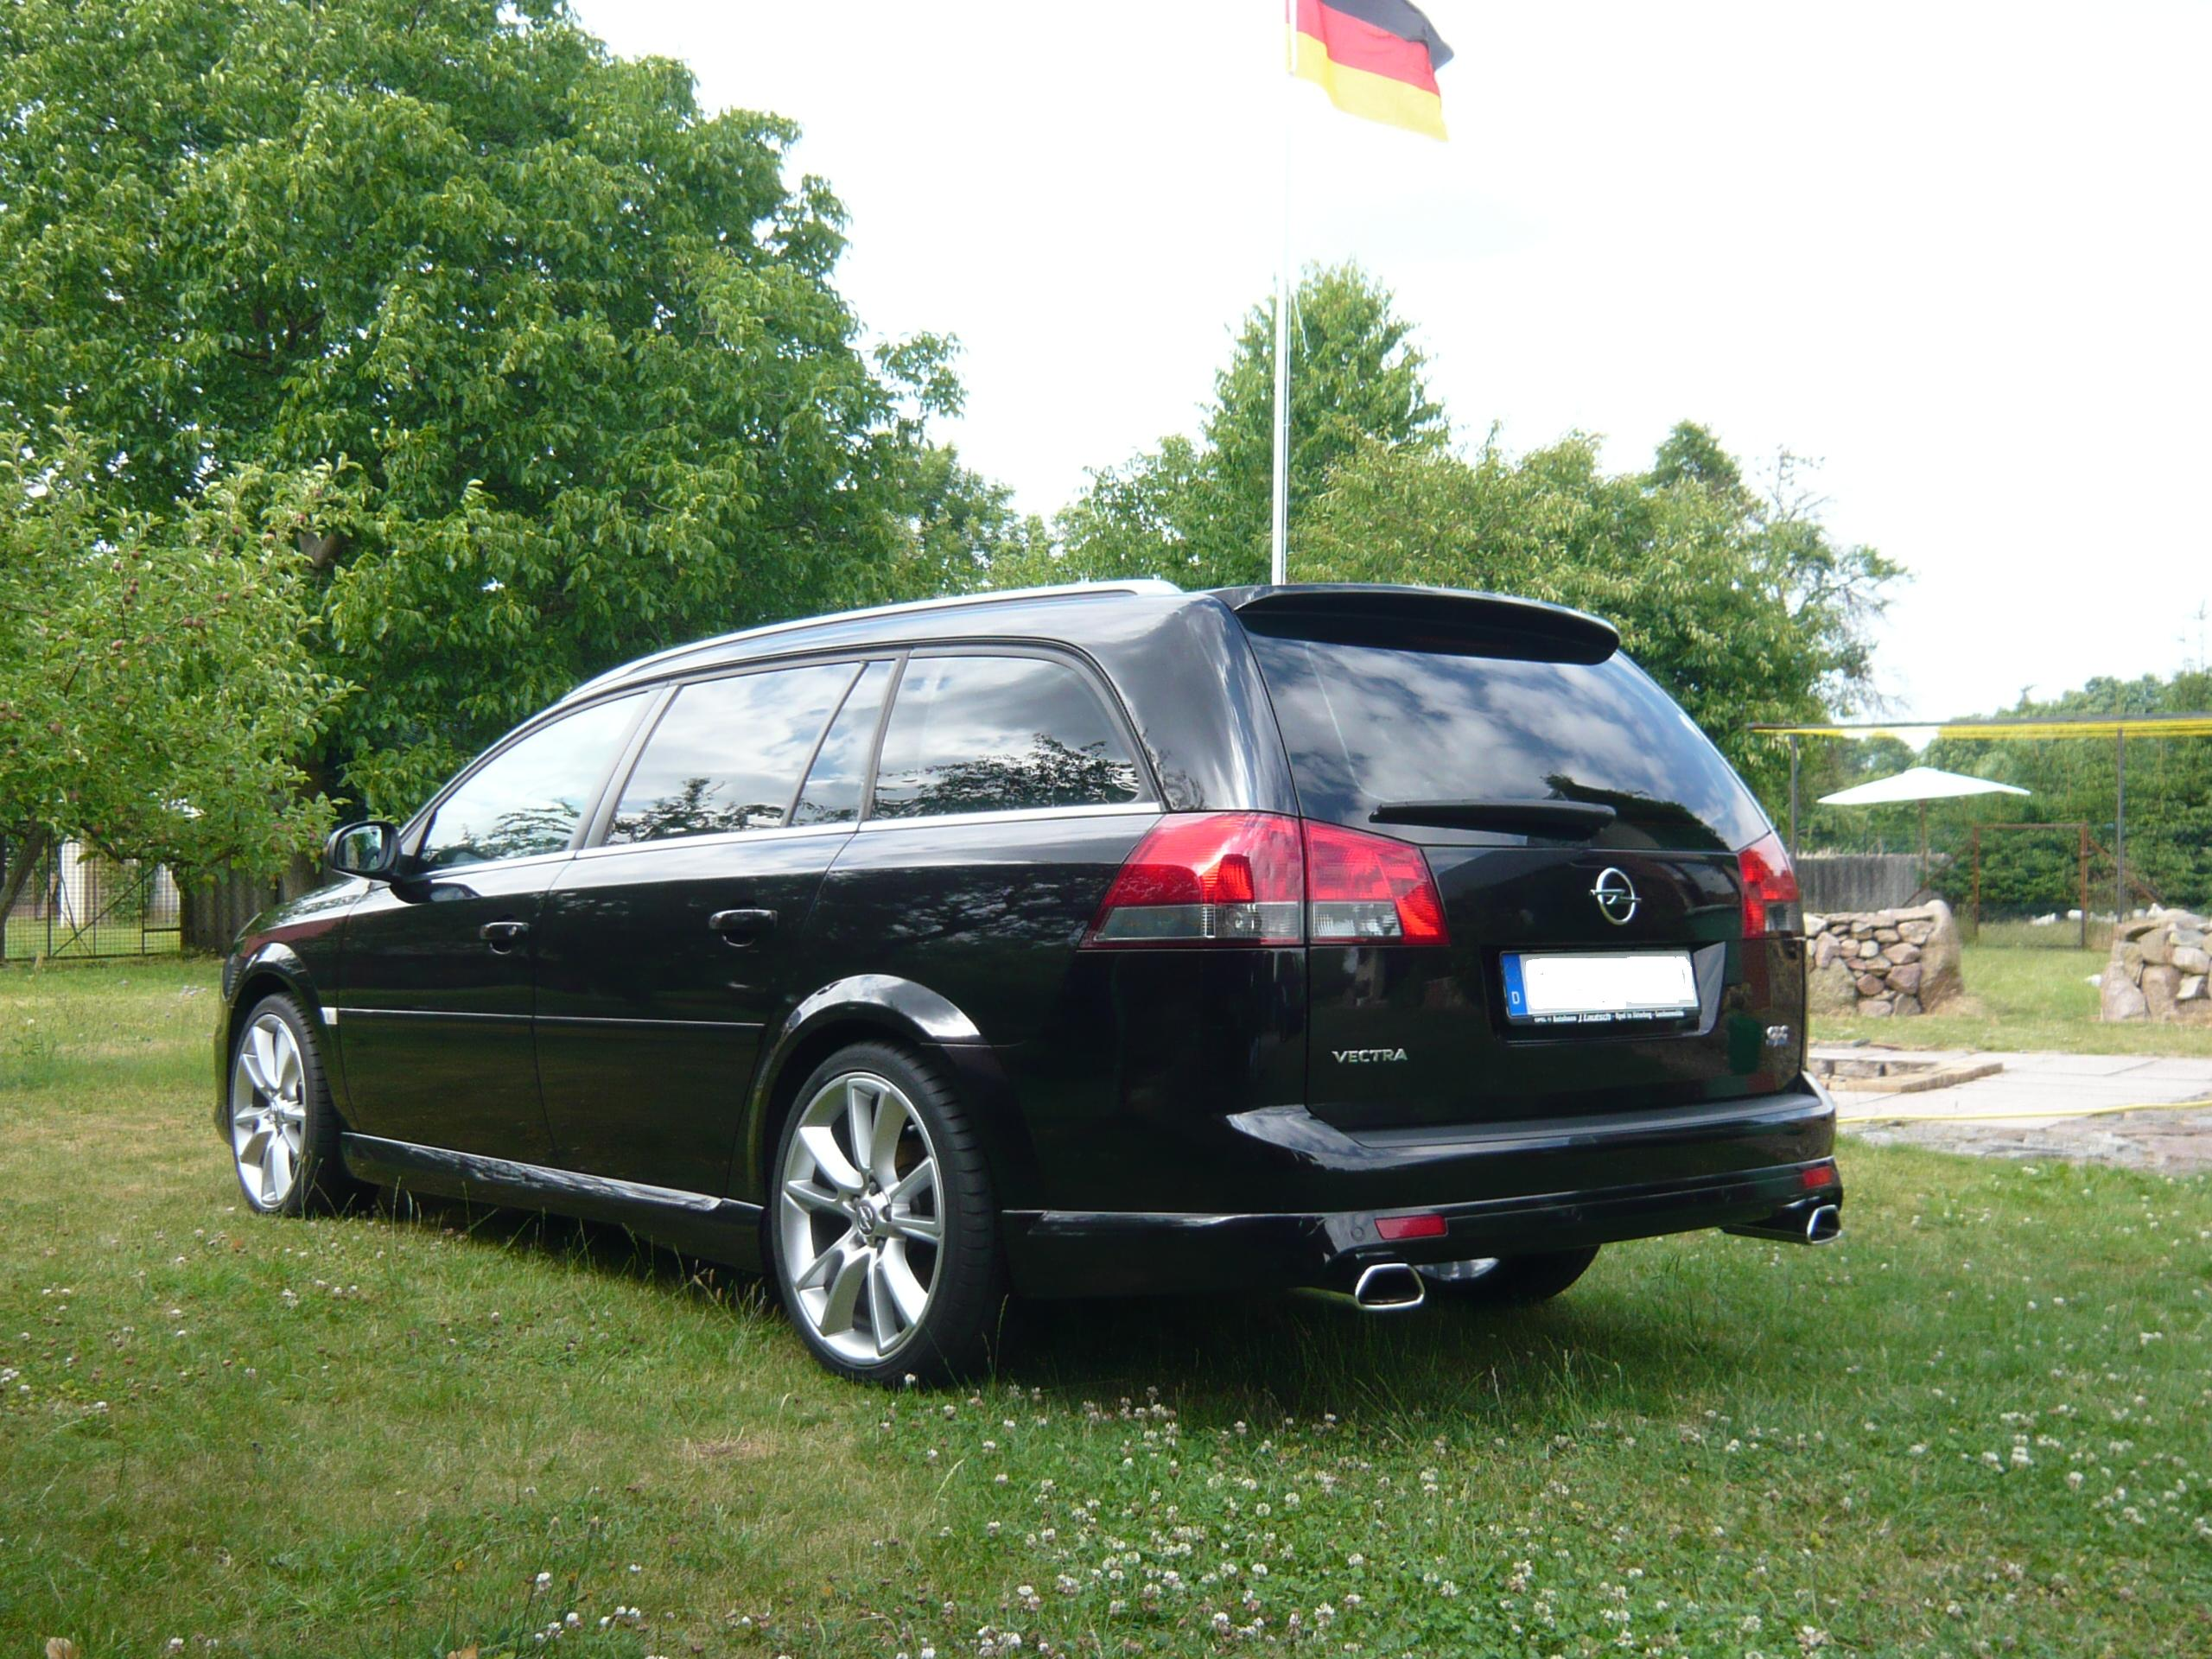 opel vectra caravan opc technical details history photos on better parts ltd. Black Bedroom Furniture Sets. Home Design Ideas